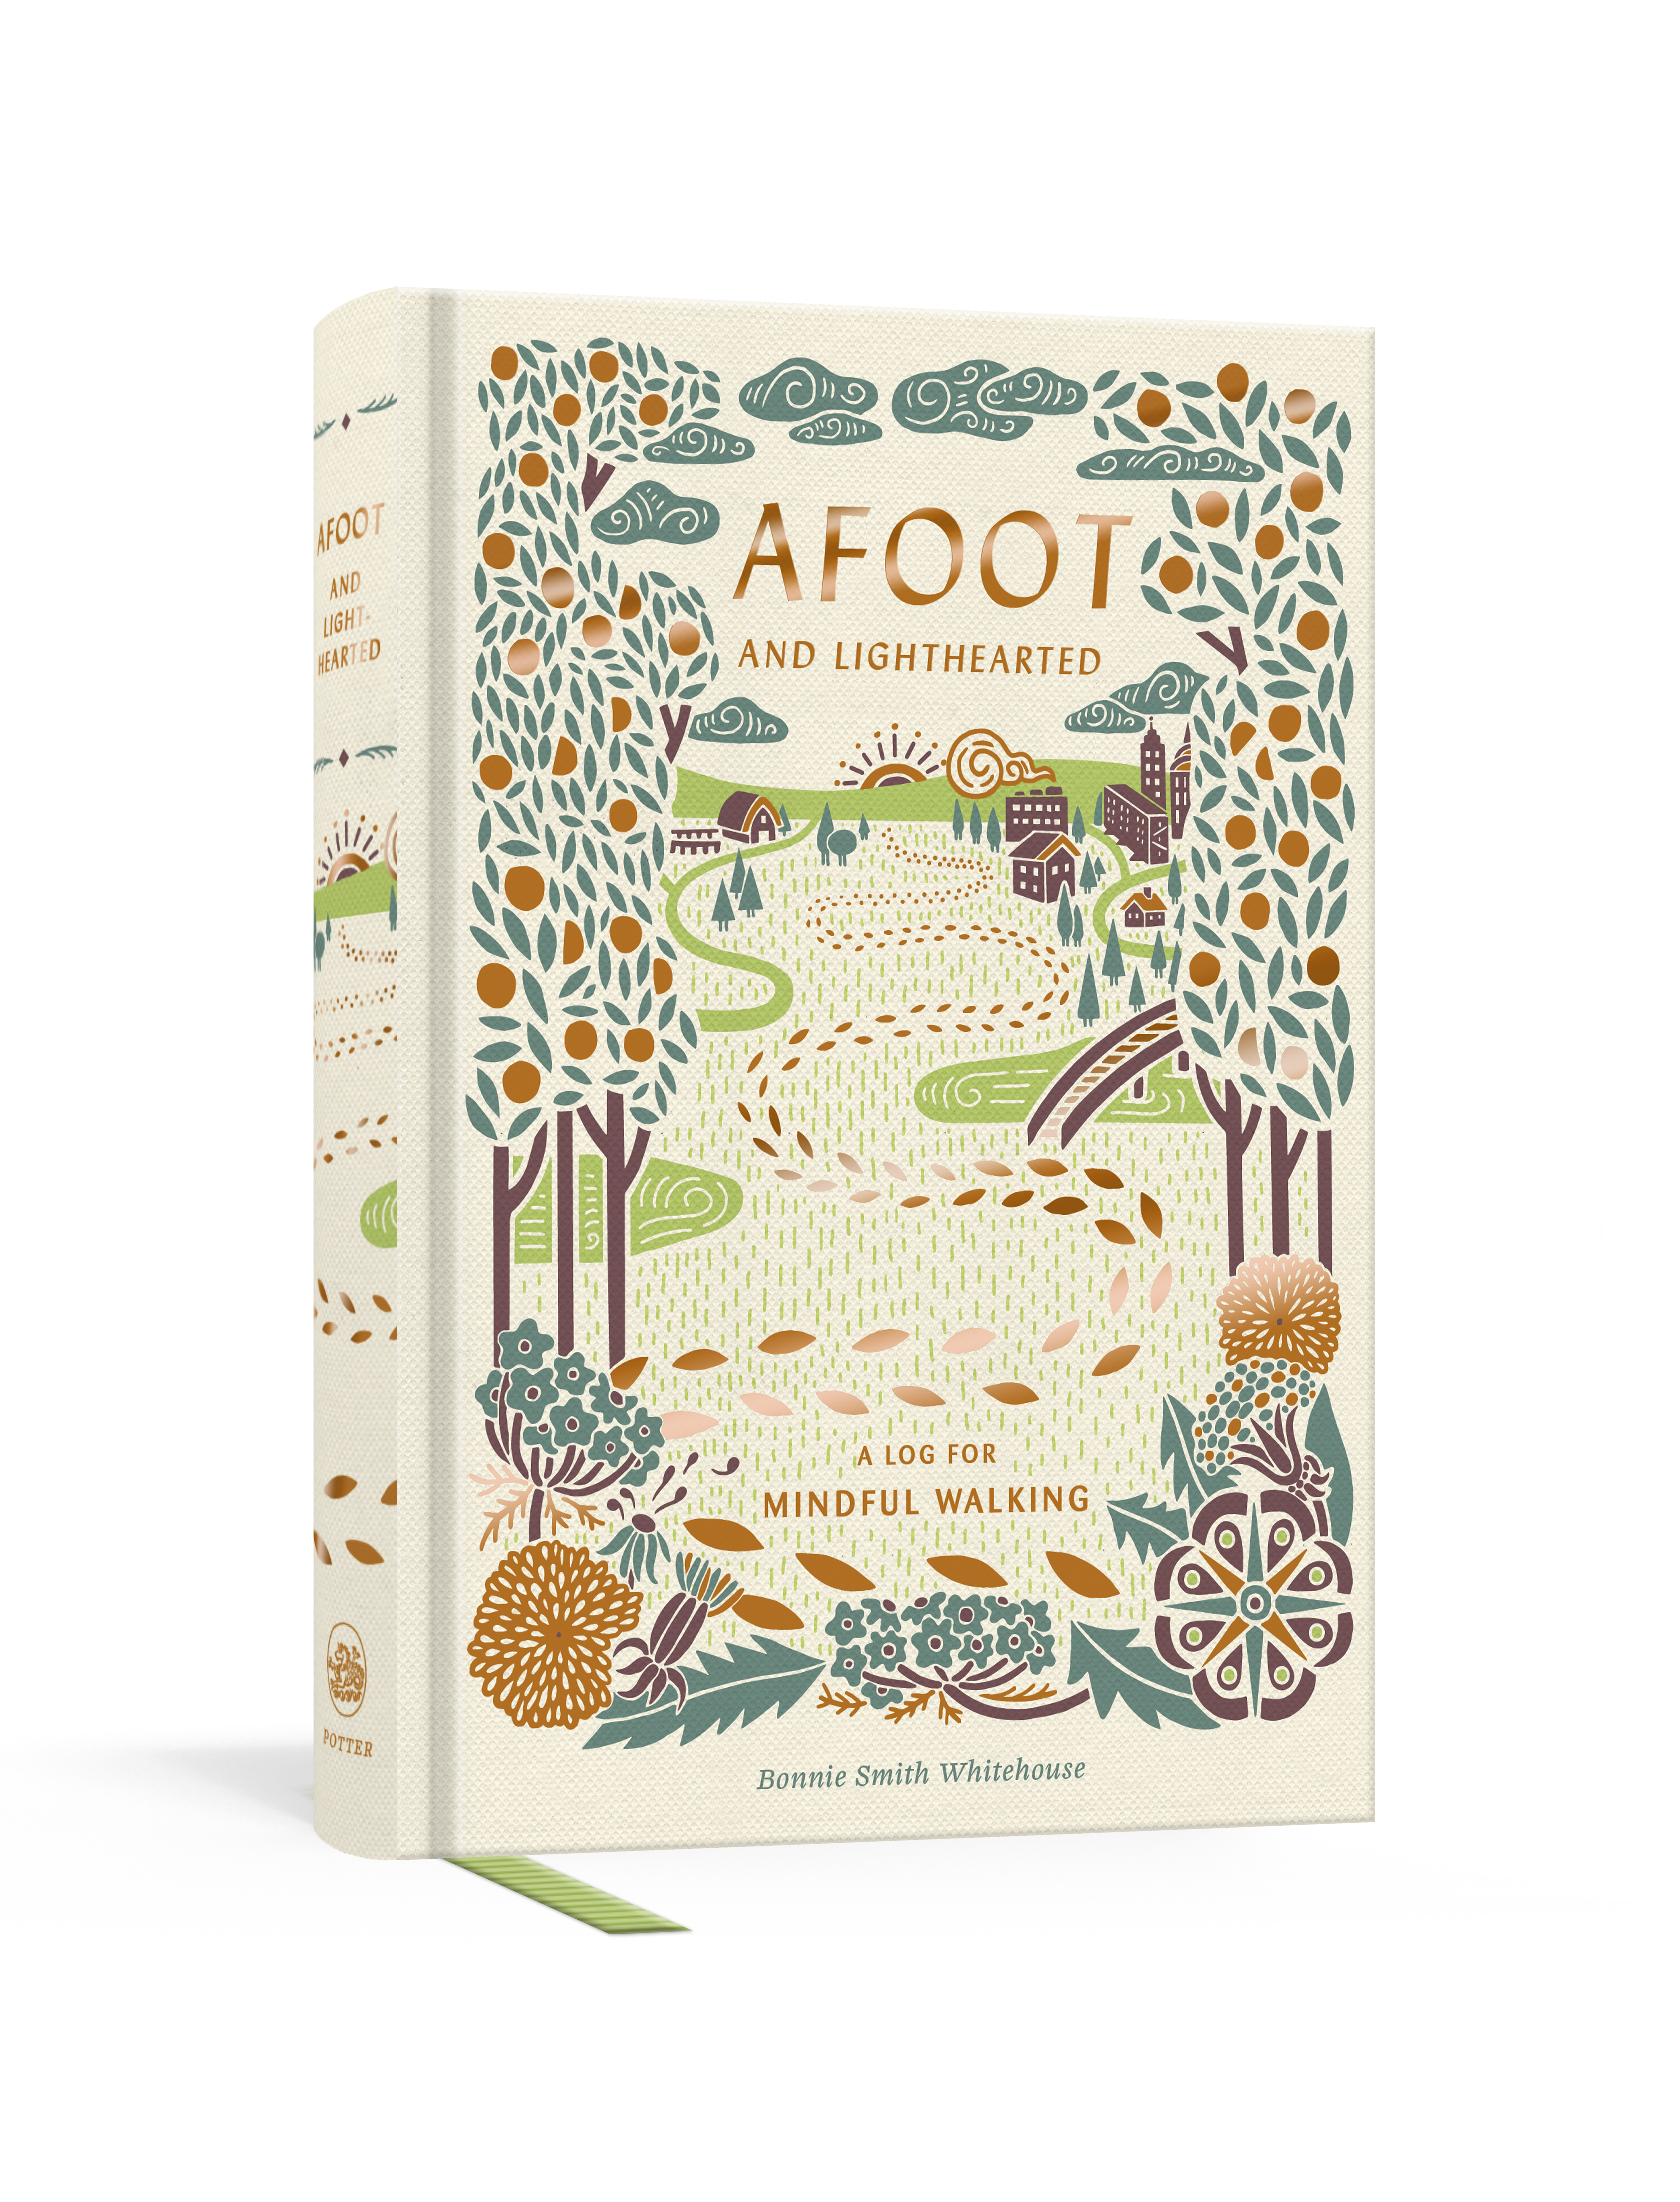 """A guided journal for people seeking new ways to unplug, get active, inspire creativity, cultivate mindfulness, and improve well-being. - Afoot and Lighthearted is the first interactive journal of its kind for walkers who want to expand their physical and creative worlds through acts of mindfulness. Afoot and Lighthearted will teach readers how to harness the power of walking to cultivate and nourish attention, inspiration, and determination, as well as to combat distraction, anxiety, and the dreaded creative block. Organized around thematic prompts designed to help makers take a break from digital life and tap into the transformational magic of creative journaling, Afoot and Lighthearted introduces us to innovative walkers throughout literature, art, philosophy, and history, and it offers encouragement in the form of inspirational quotes. Supported by light illustrations and evidence from recent research on the compelling connection between walking and well-being, Afoot and Lighthearted offers a fresh perspective every step of the way, much like a walk itself.""""The art of walking is a contemplative delight that Whitehouse offers through numerous invitations in Afoot and Lighthearted. The journal offers a reprieve from techno-filled distractions so you can don your laces and stroll in your neighborhood, city, or woods...This journal is for anyone seeking to begin an embodied contemplative practice (or for those who need an artistic kick in the ass to drop their phones and walk out the door).""""—Paul Swanson, CONTEMPLIFYPick up a copy today at your favorite independent bookstore! Mine happens to be Parnassus Books in Nashville, Tennessee.Afoot and Lighthearted is also available at Amazon, Barnes and Noble, Target, and Walmart.""""This Latin Phrase Will Change the Way You Manage Problems."""" A review from Quartzy""""To Take Feet to Ground."""" A review from Chapter 16""""Books for Mom."""" Nashville Lifestyles""""How to Make Your Midday Walk a More Mindful Experience, from a 'Walking Profess"""